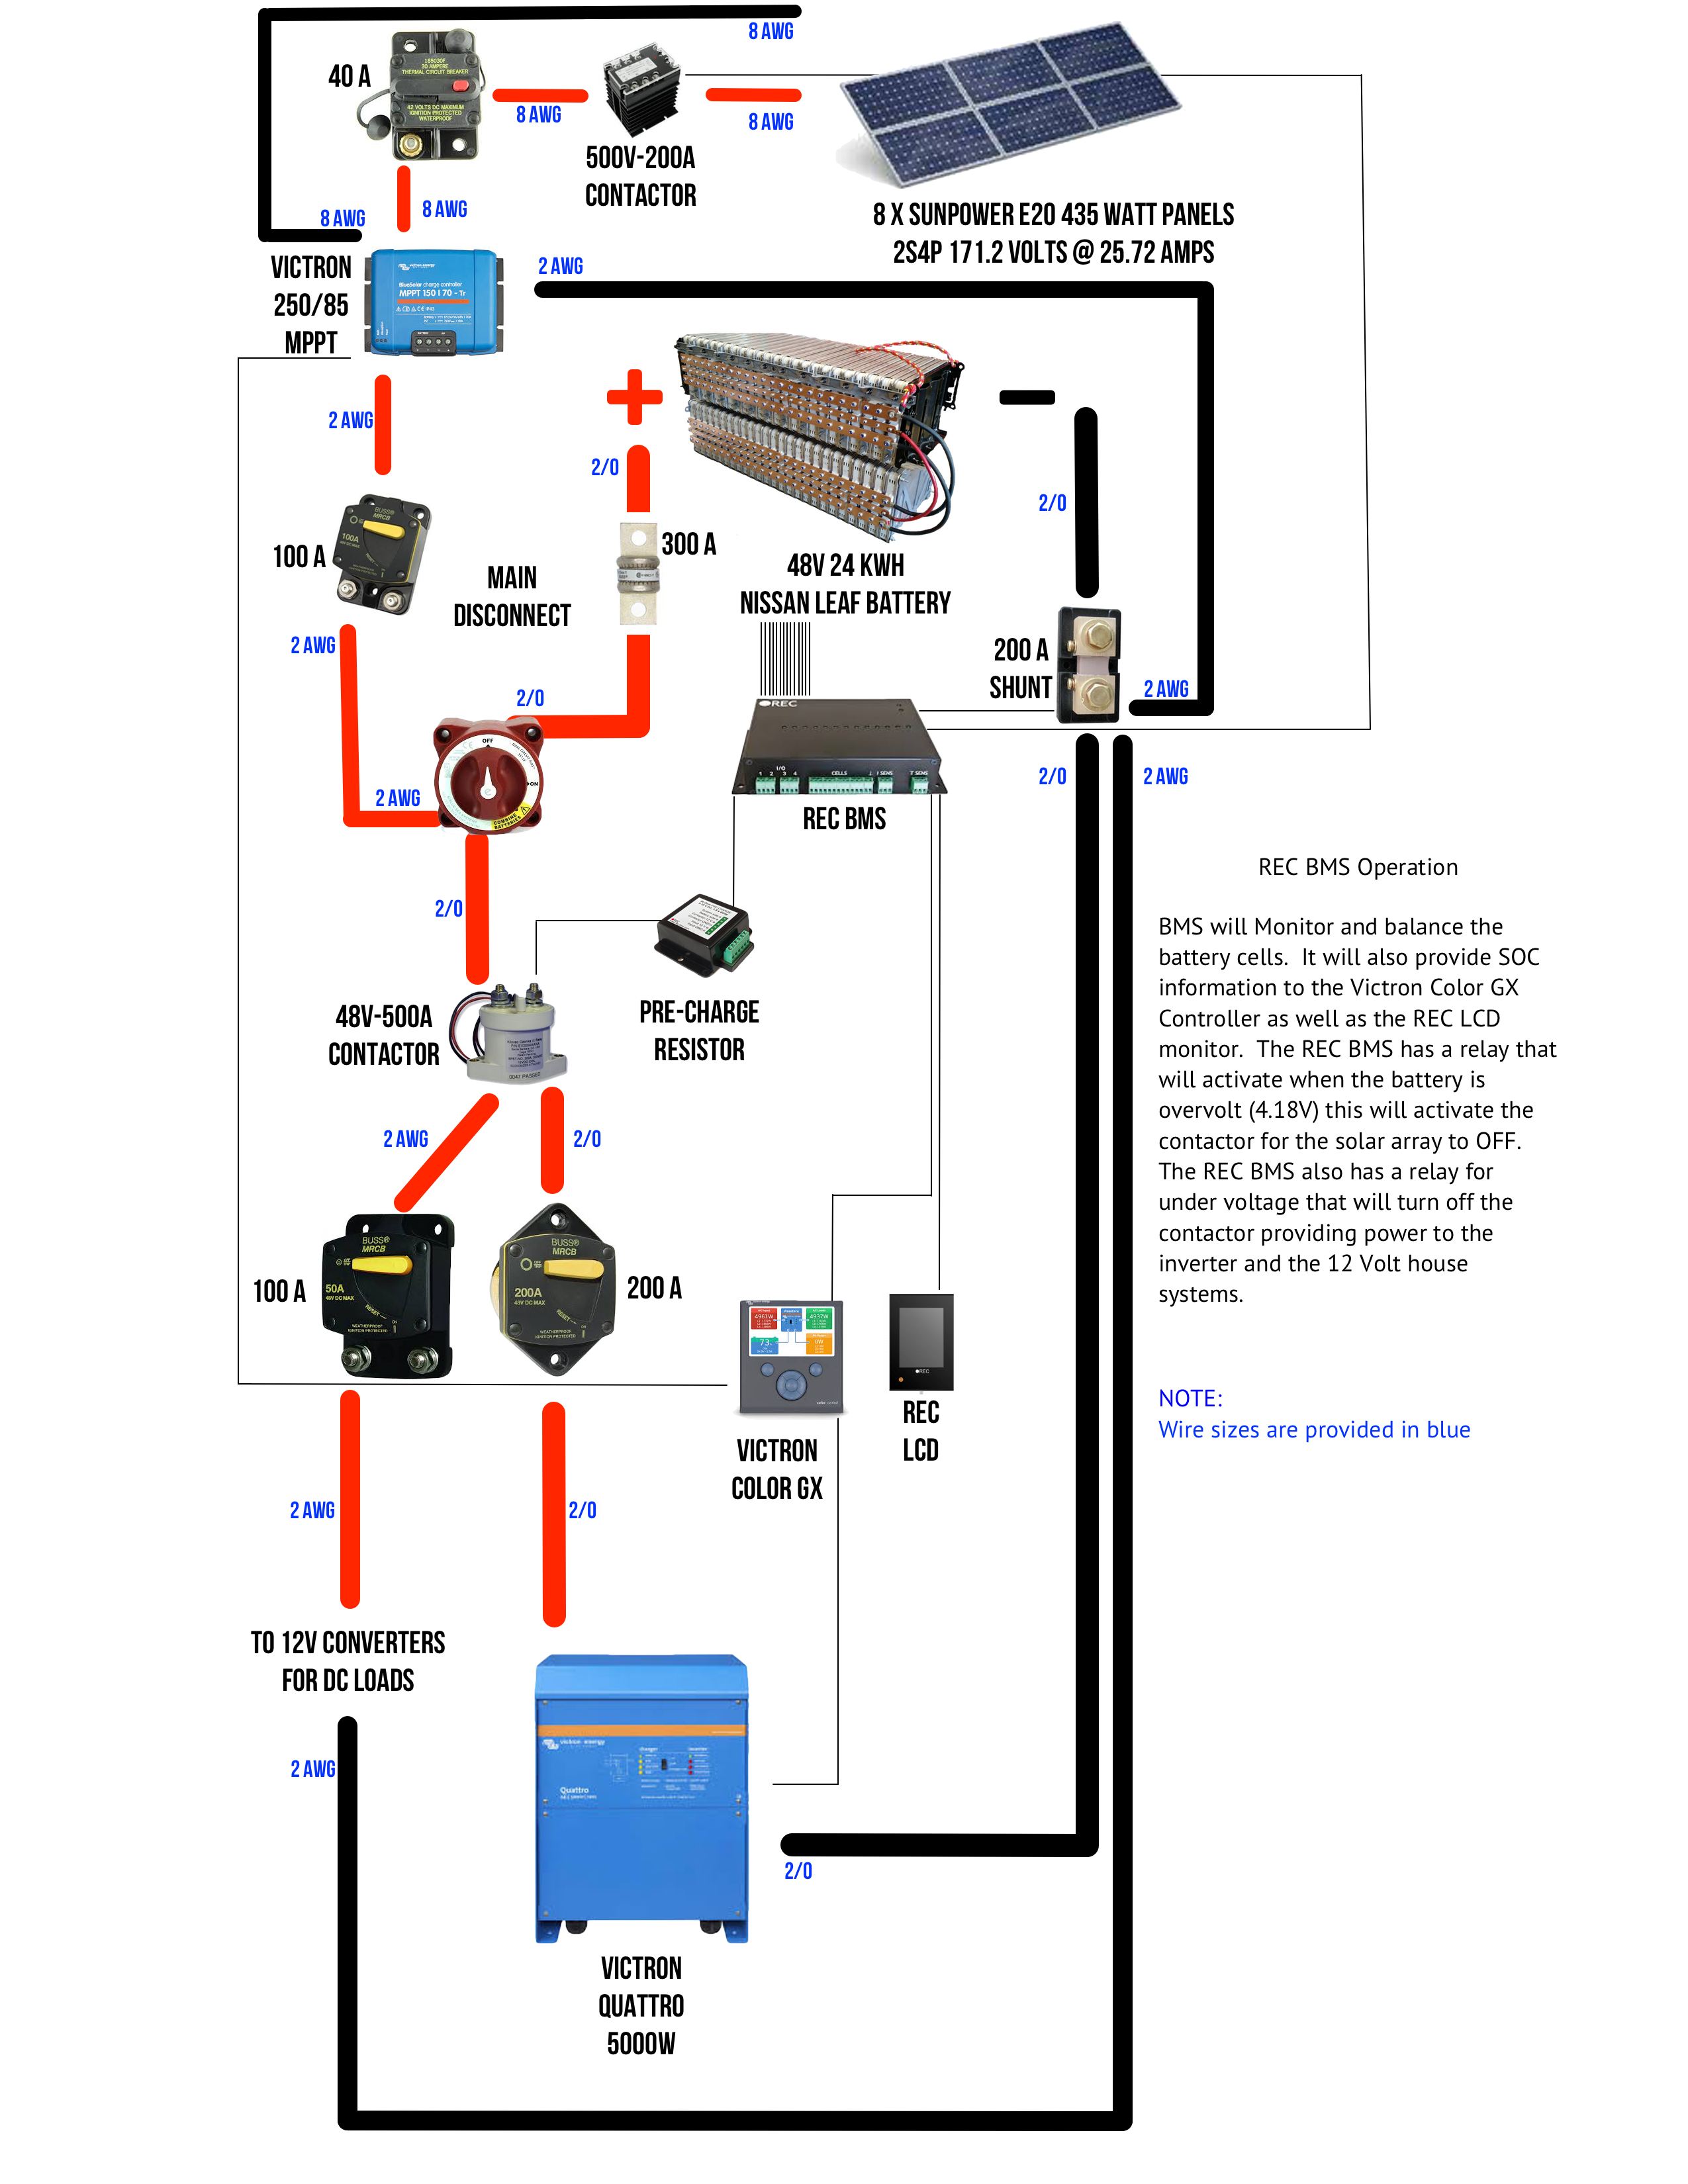 A Hackers Take On Rv House Batteries Part 7 Supply Side Wiring Dc Shunt Diagram We Provided Wire Sizes For Each Of The Major Components And Sized Breakers To Fit Given After Modeling It Sent Few Friends